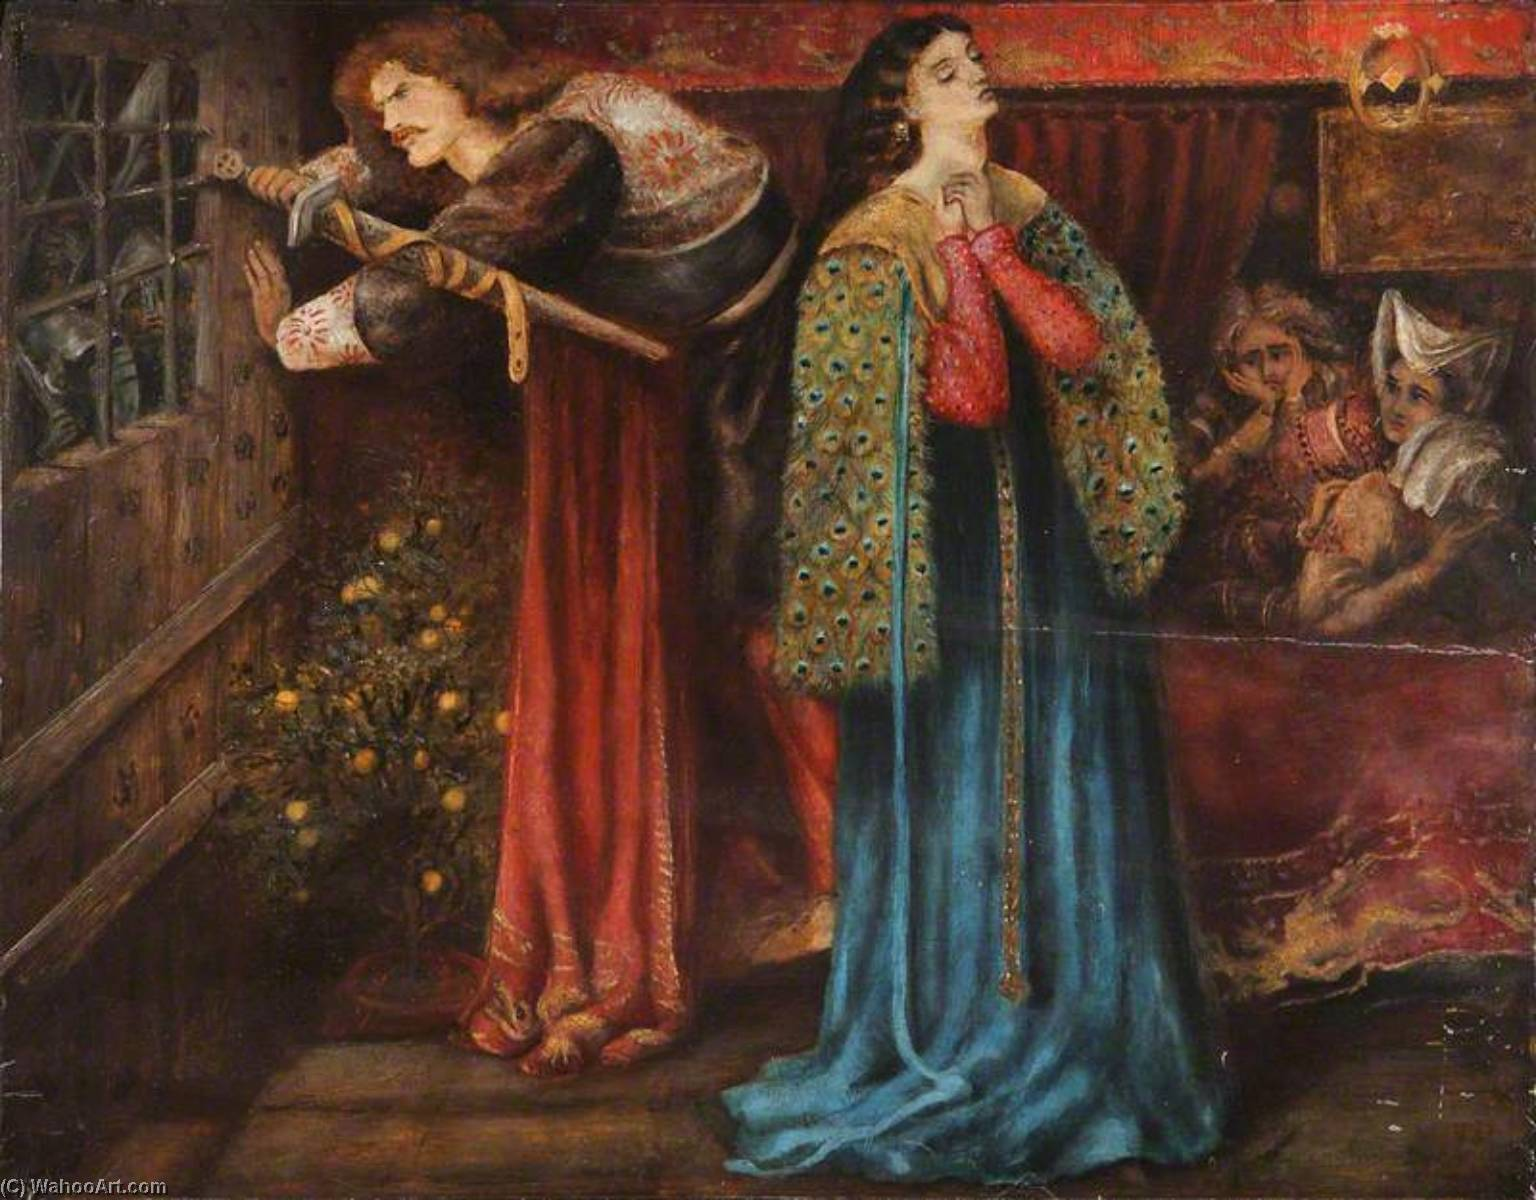 Sir Launcelot in the Queen's Chamber (after Dante Gabriel Rossetti), Oil by Henry Treffry Dunn